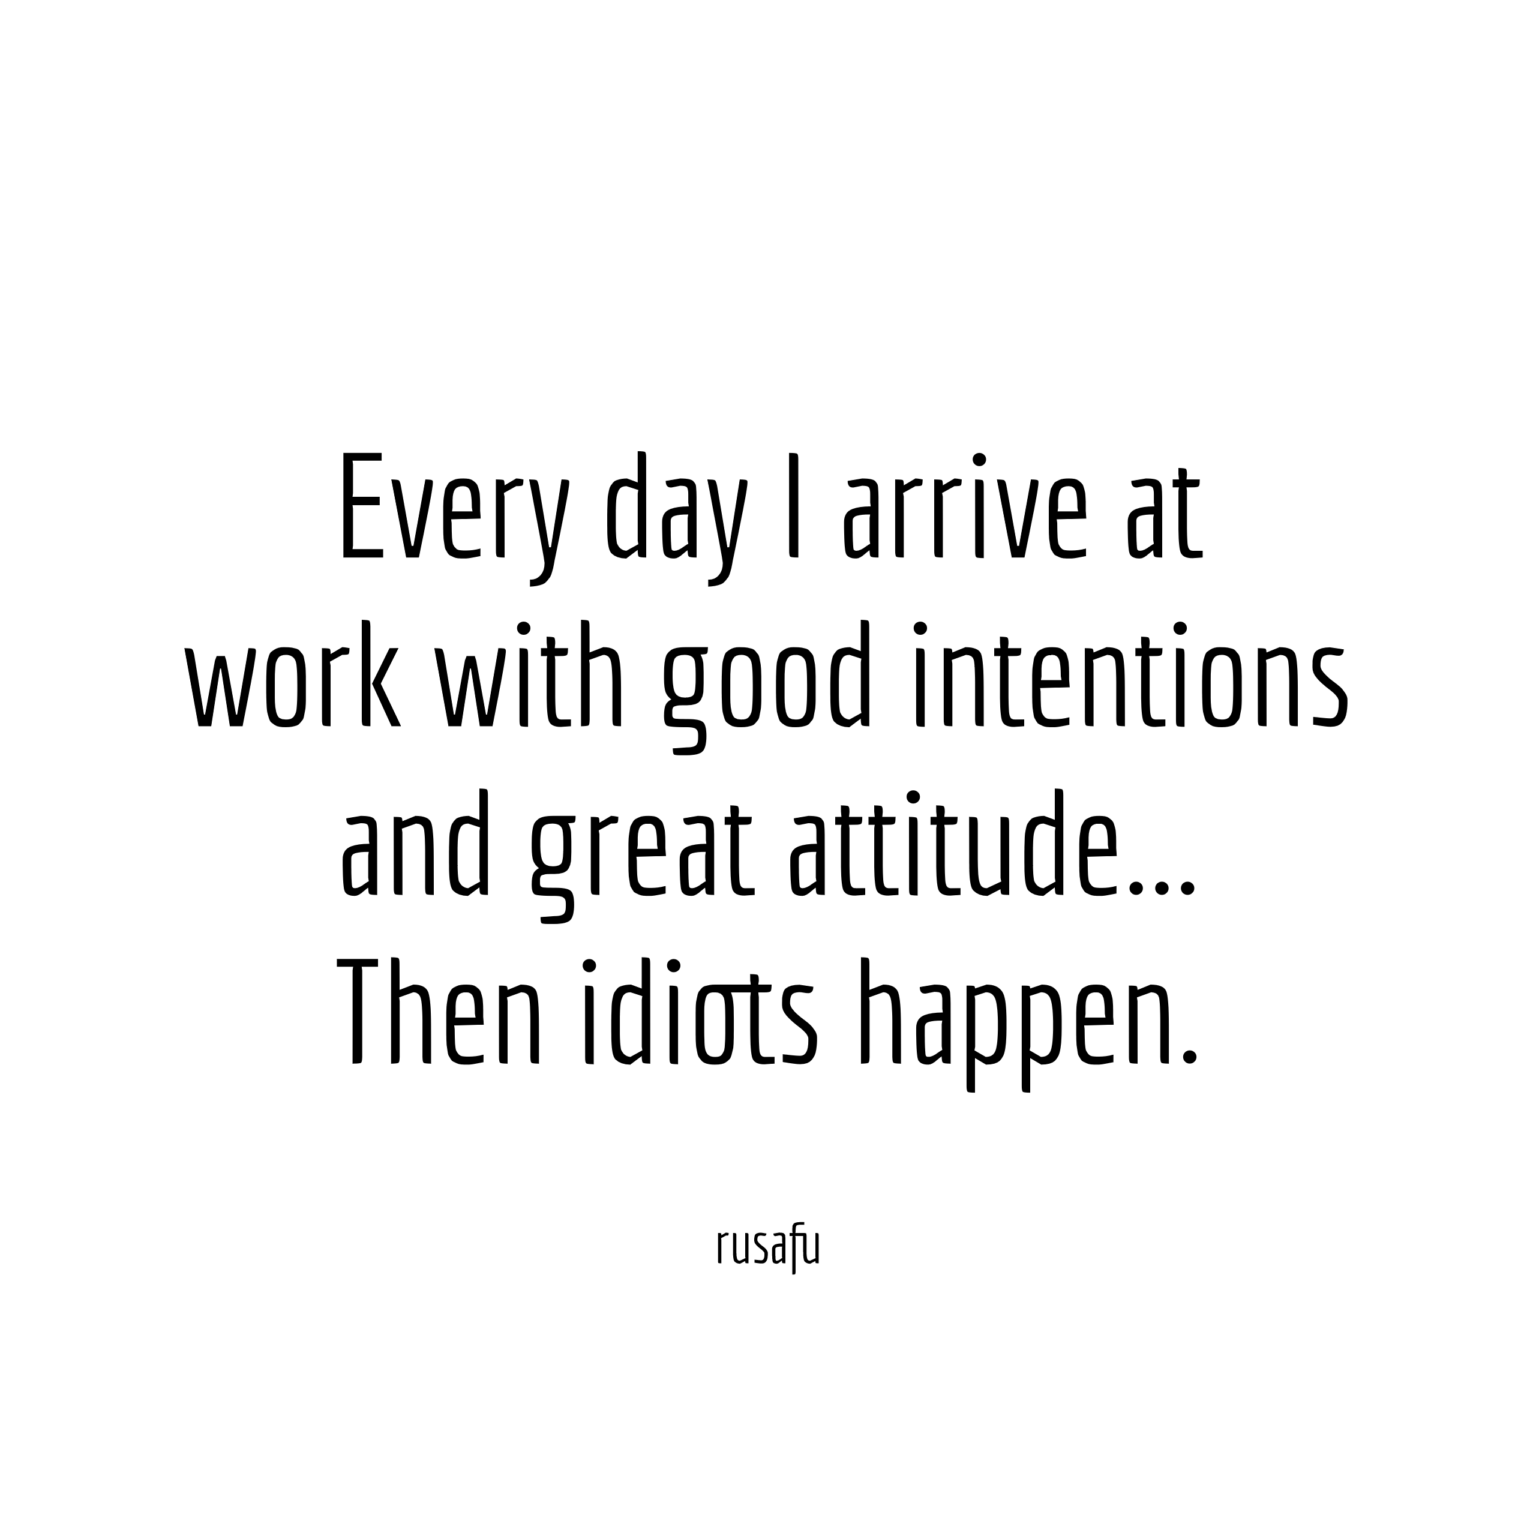 Every Day I Arrive At Work With Good Intentions And Great Attitude Then Idiots Happen Rusafu In 2021 Work Quotes Funny Funny Quotes Work Quotes